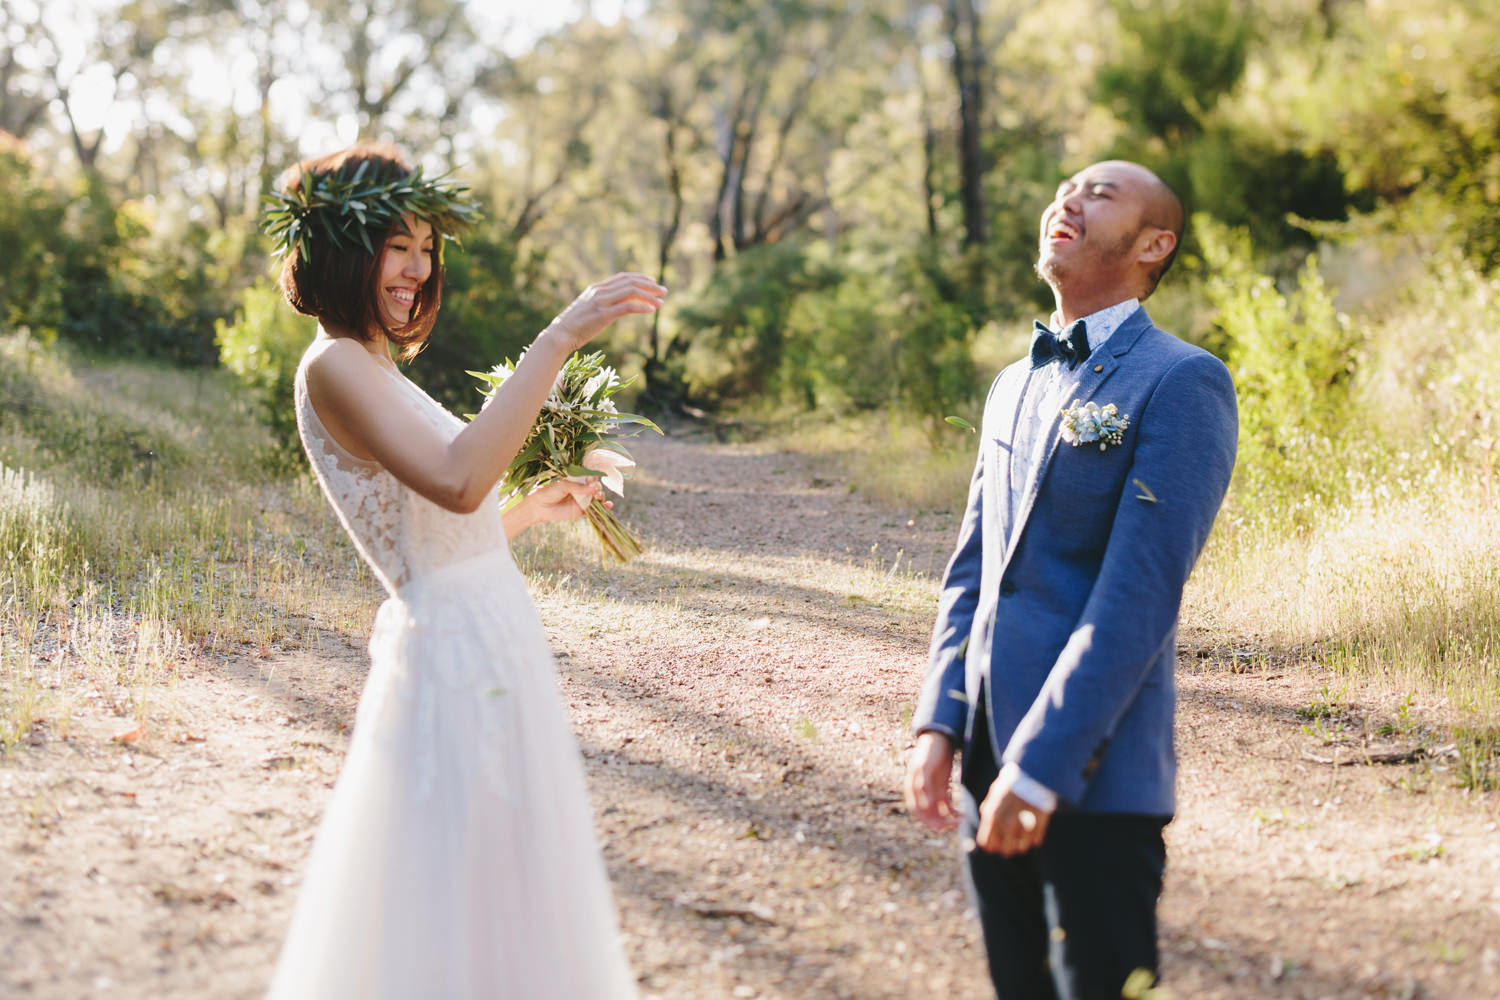 124-Barn_Wedding_Australia_Sam_Ting.jpg